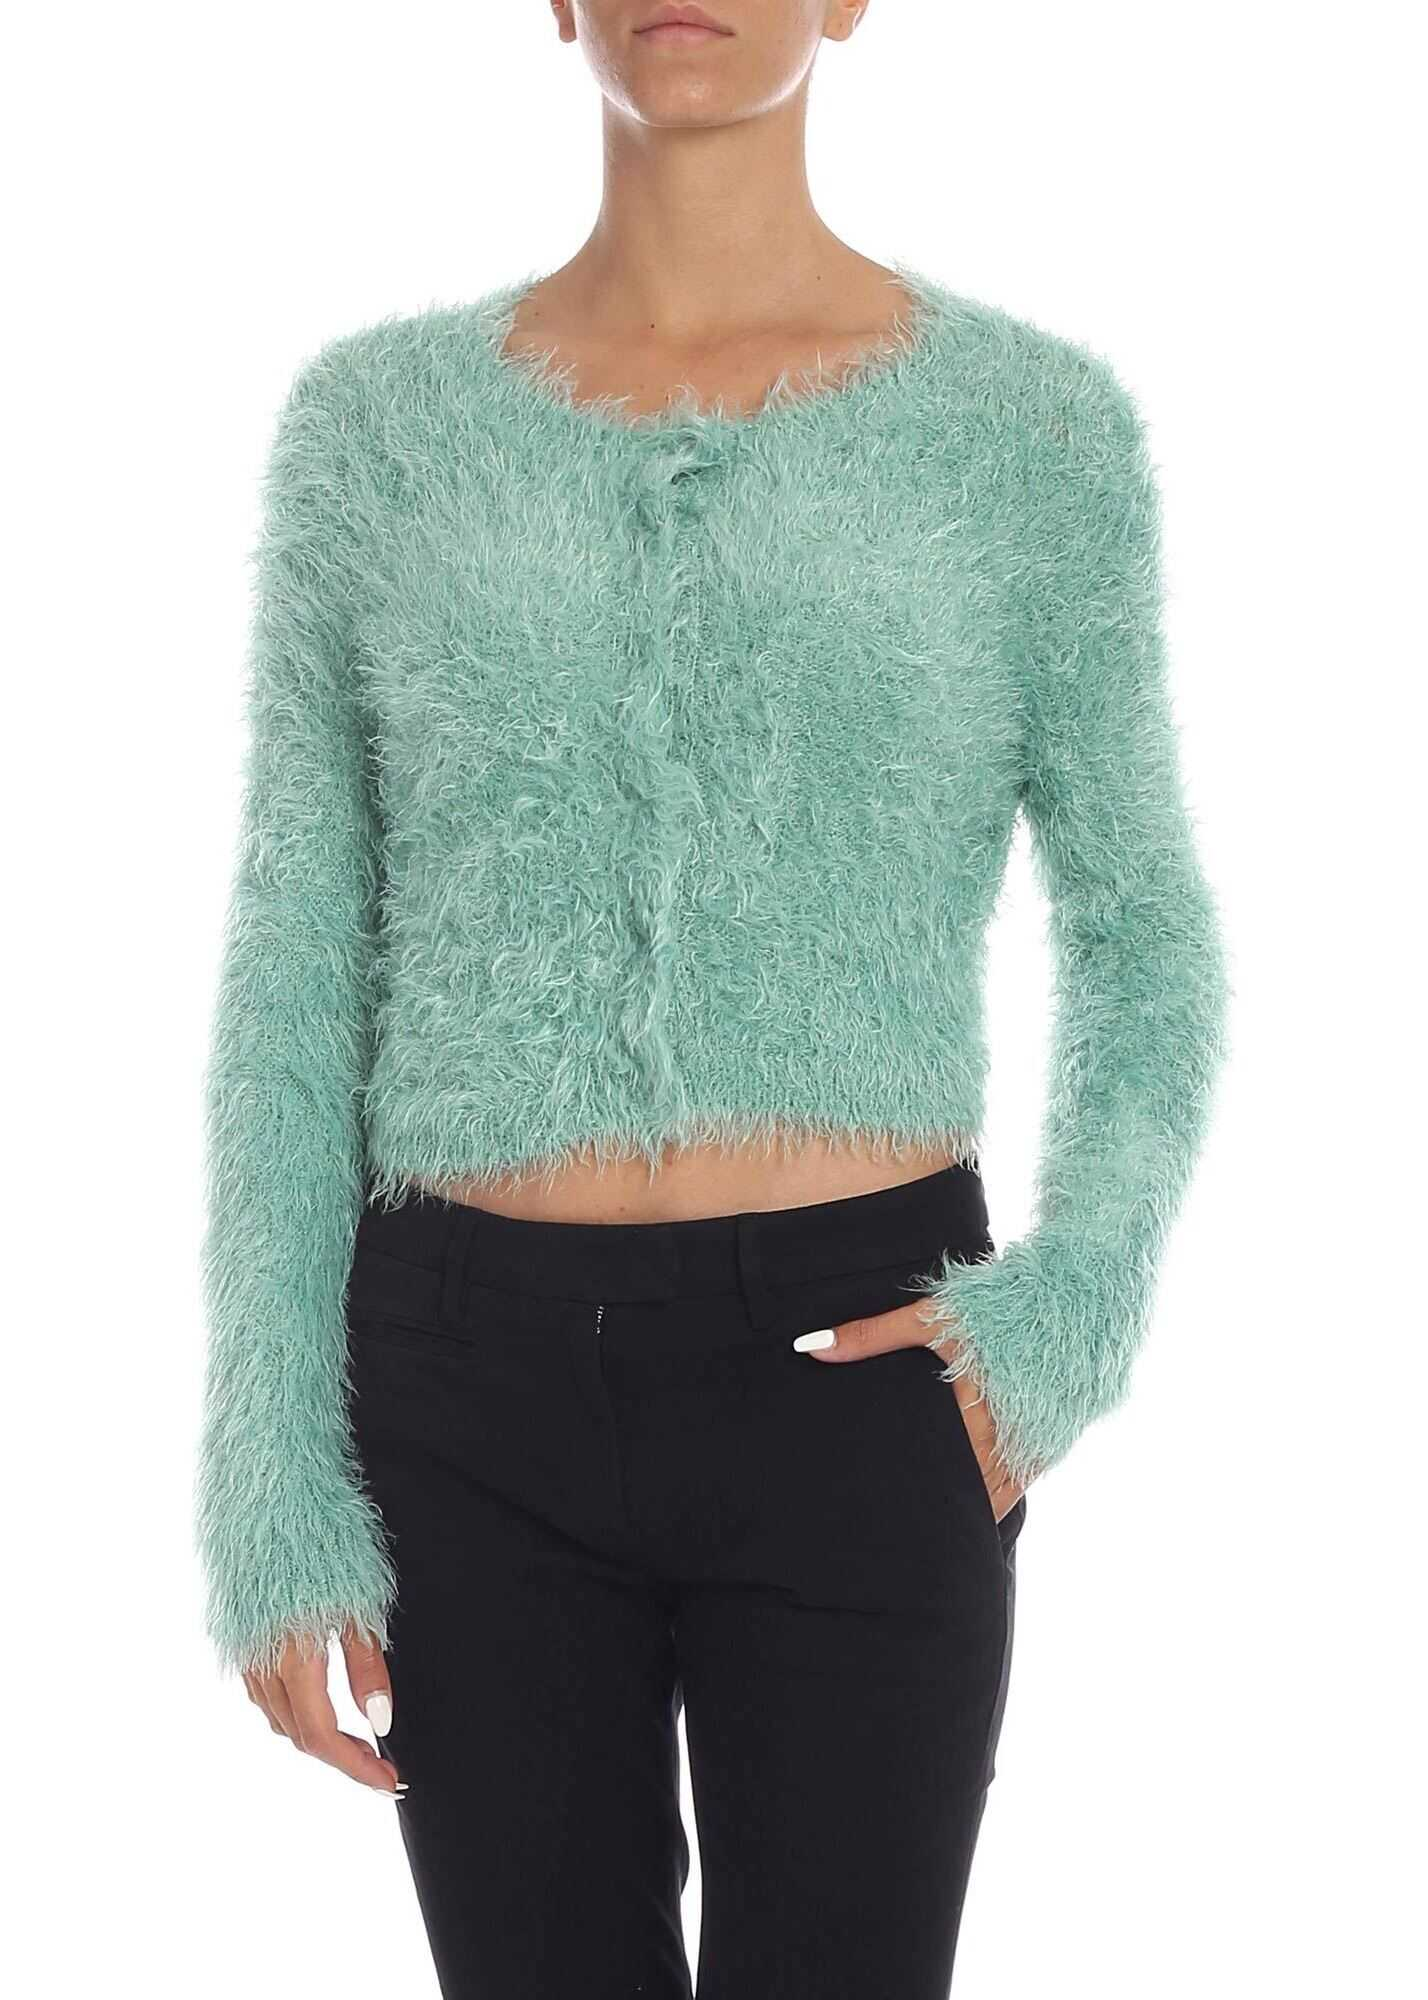 Ucraino Cardigan In Aquamarine Color thumbnail